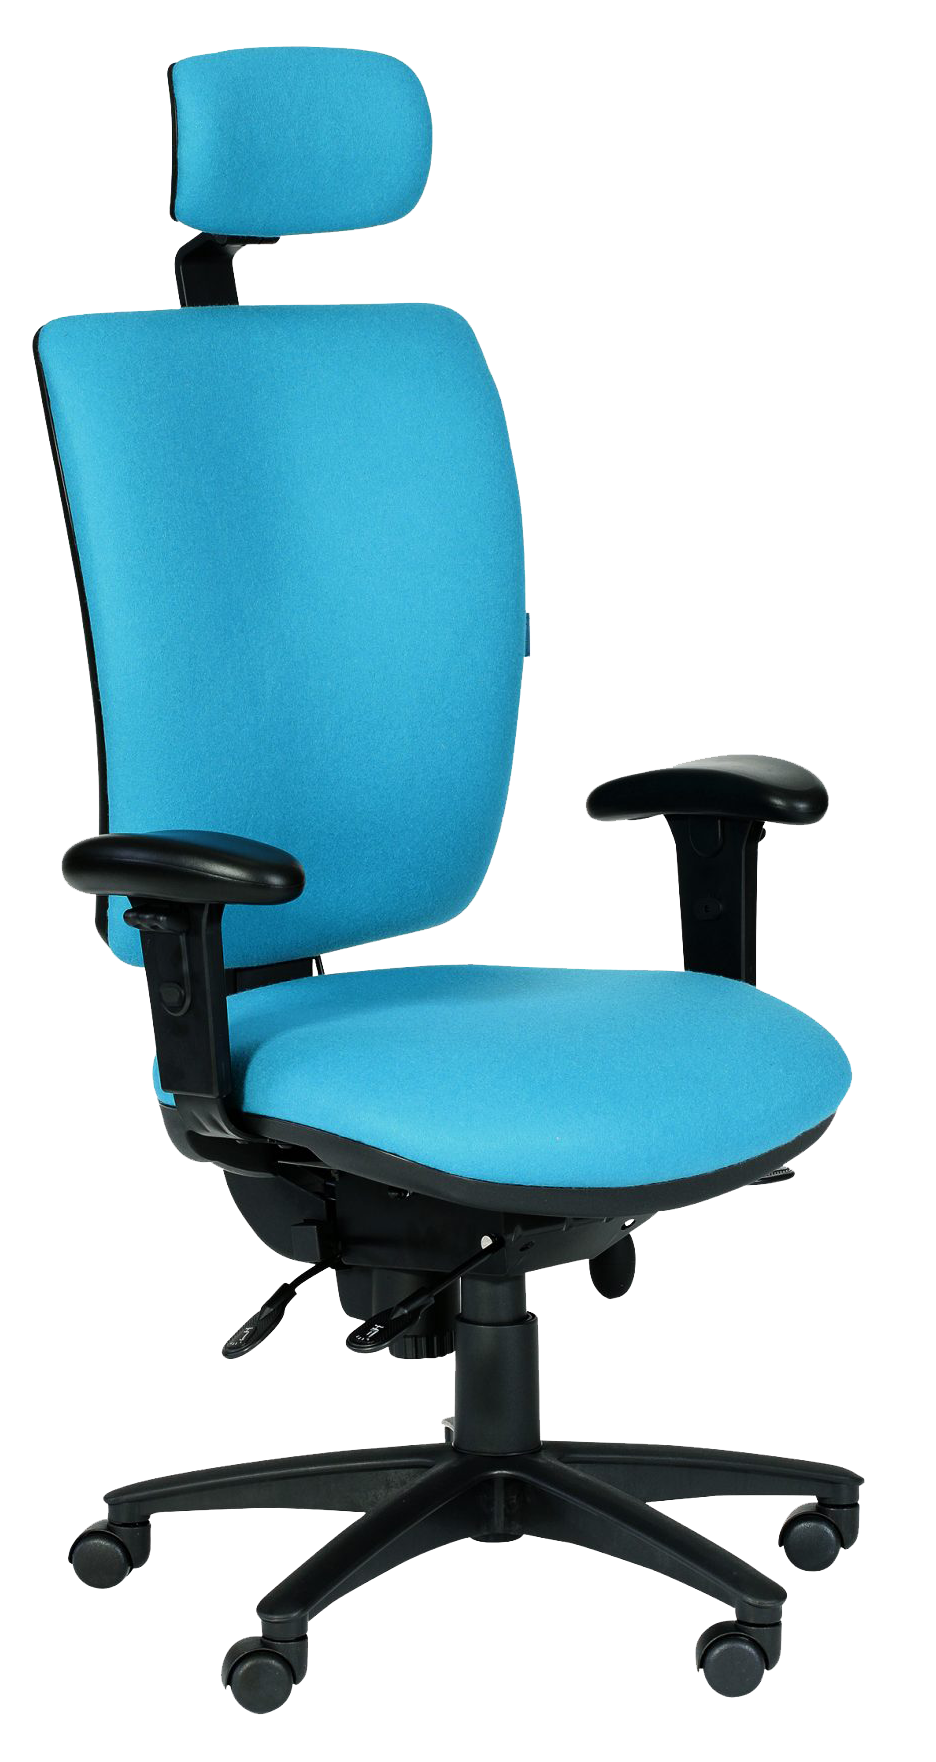 Photograph of the Tick 24 Hour chair with light blue fabric